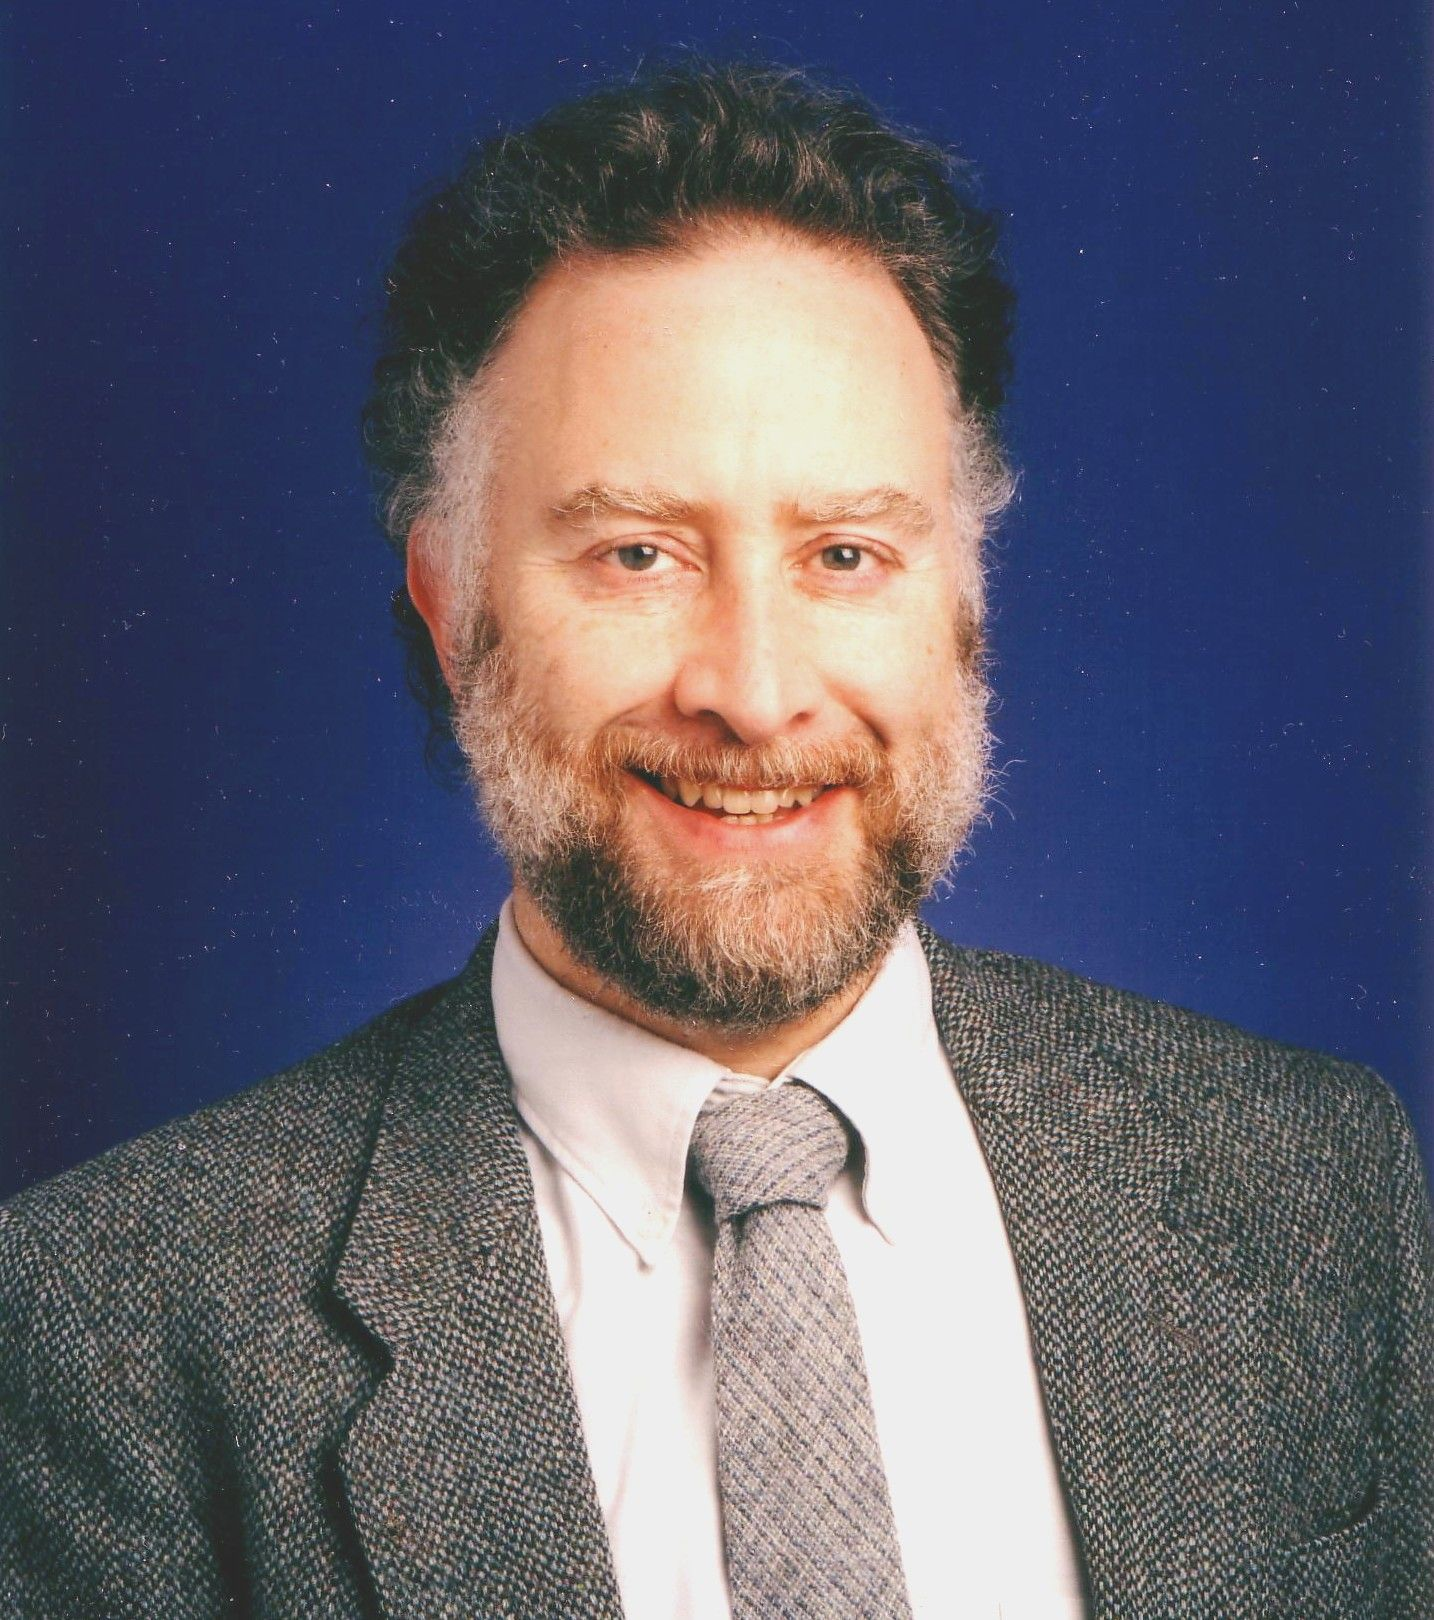 Ronald W. Pies, MD